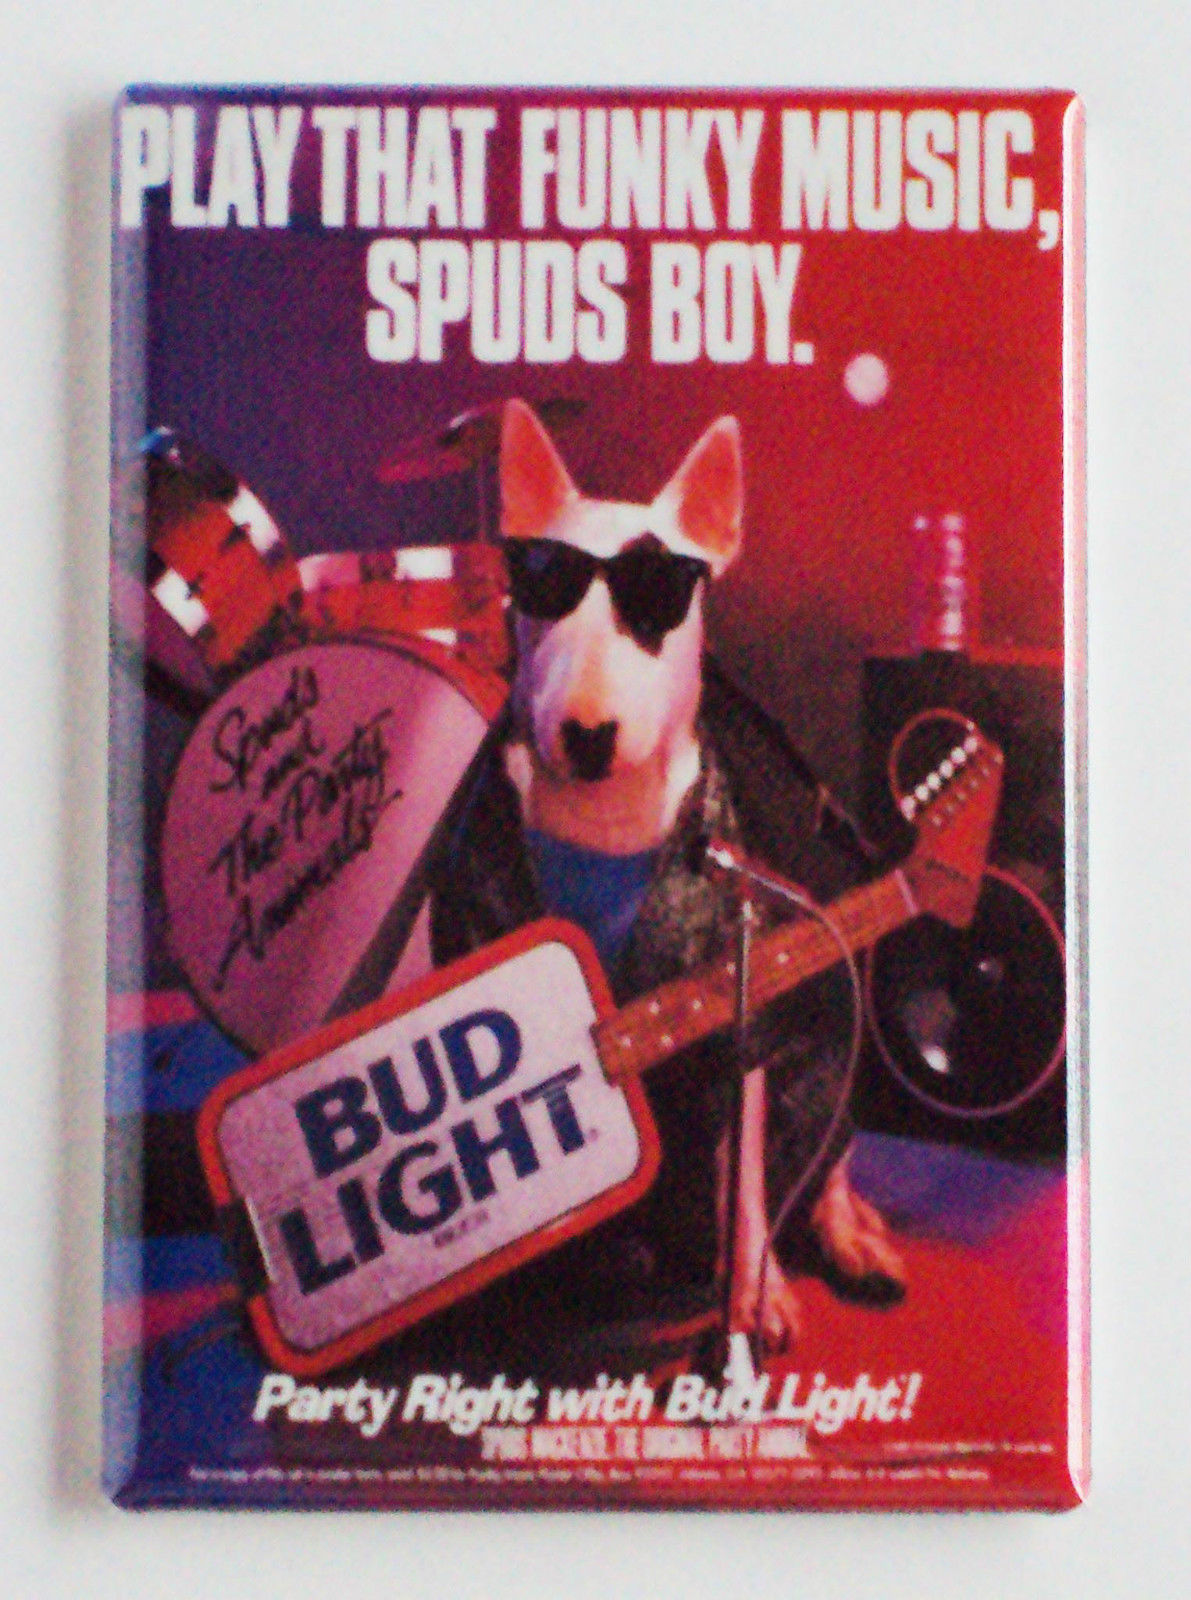 spuds mackenzie play that funky music fridge magnet catch a